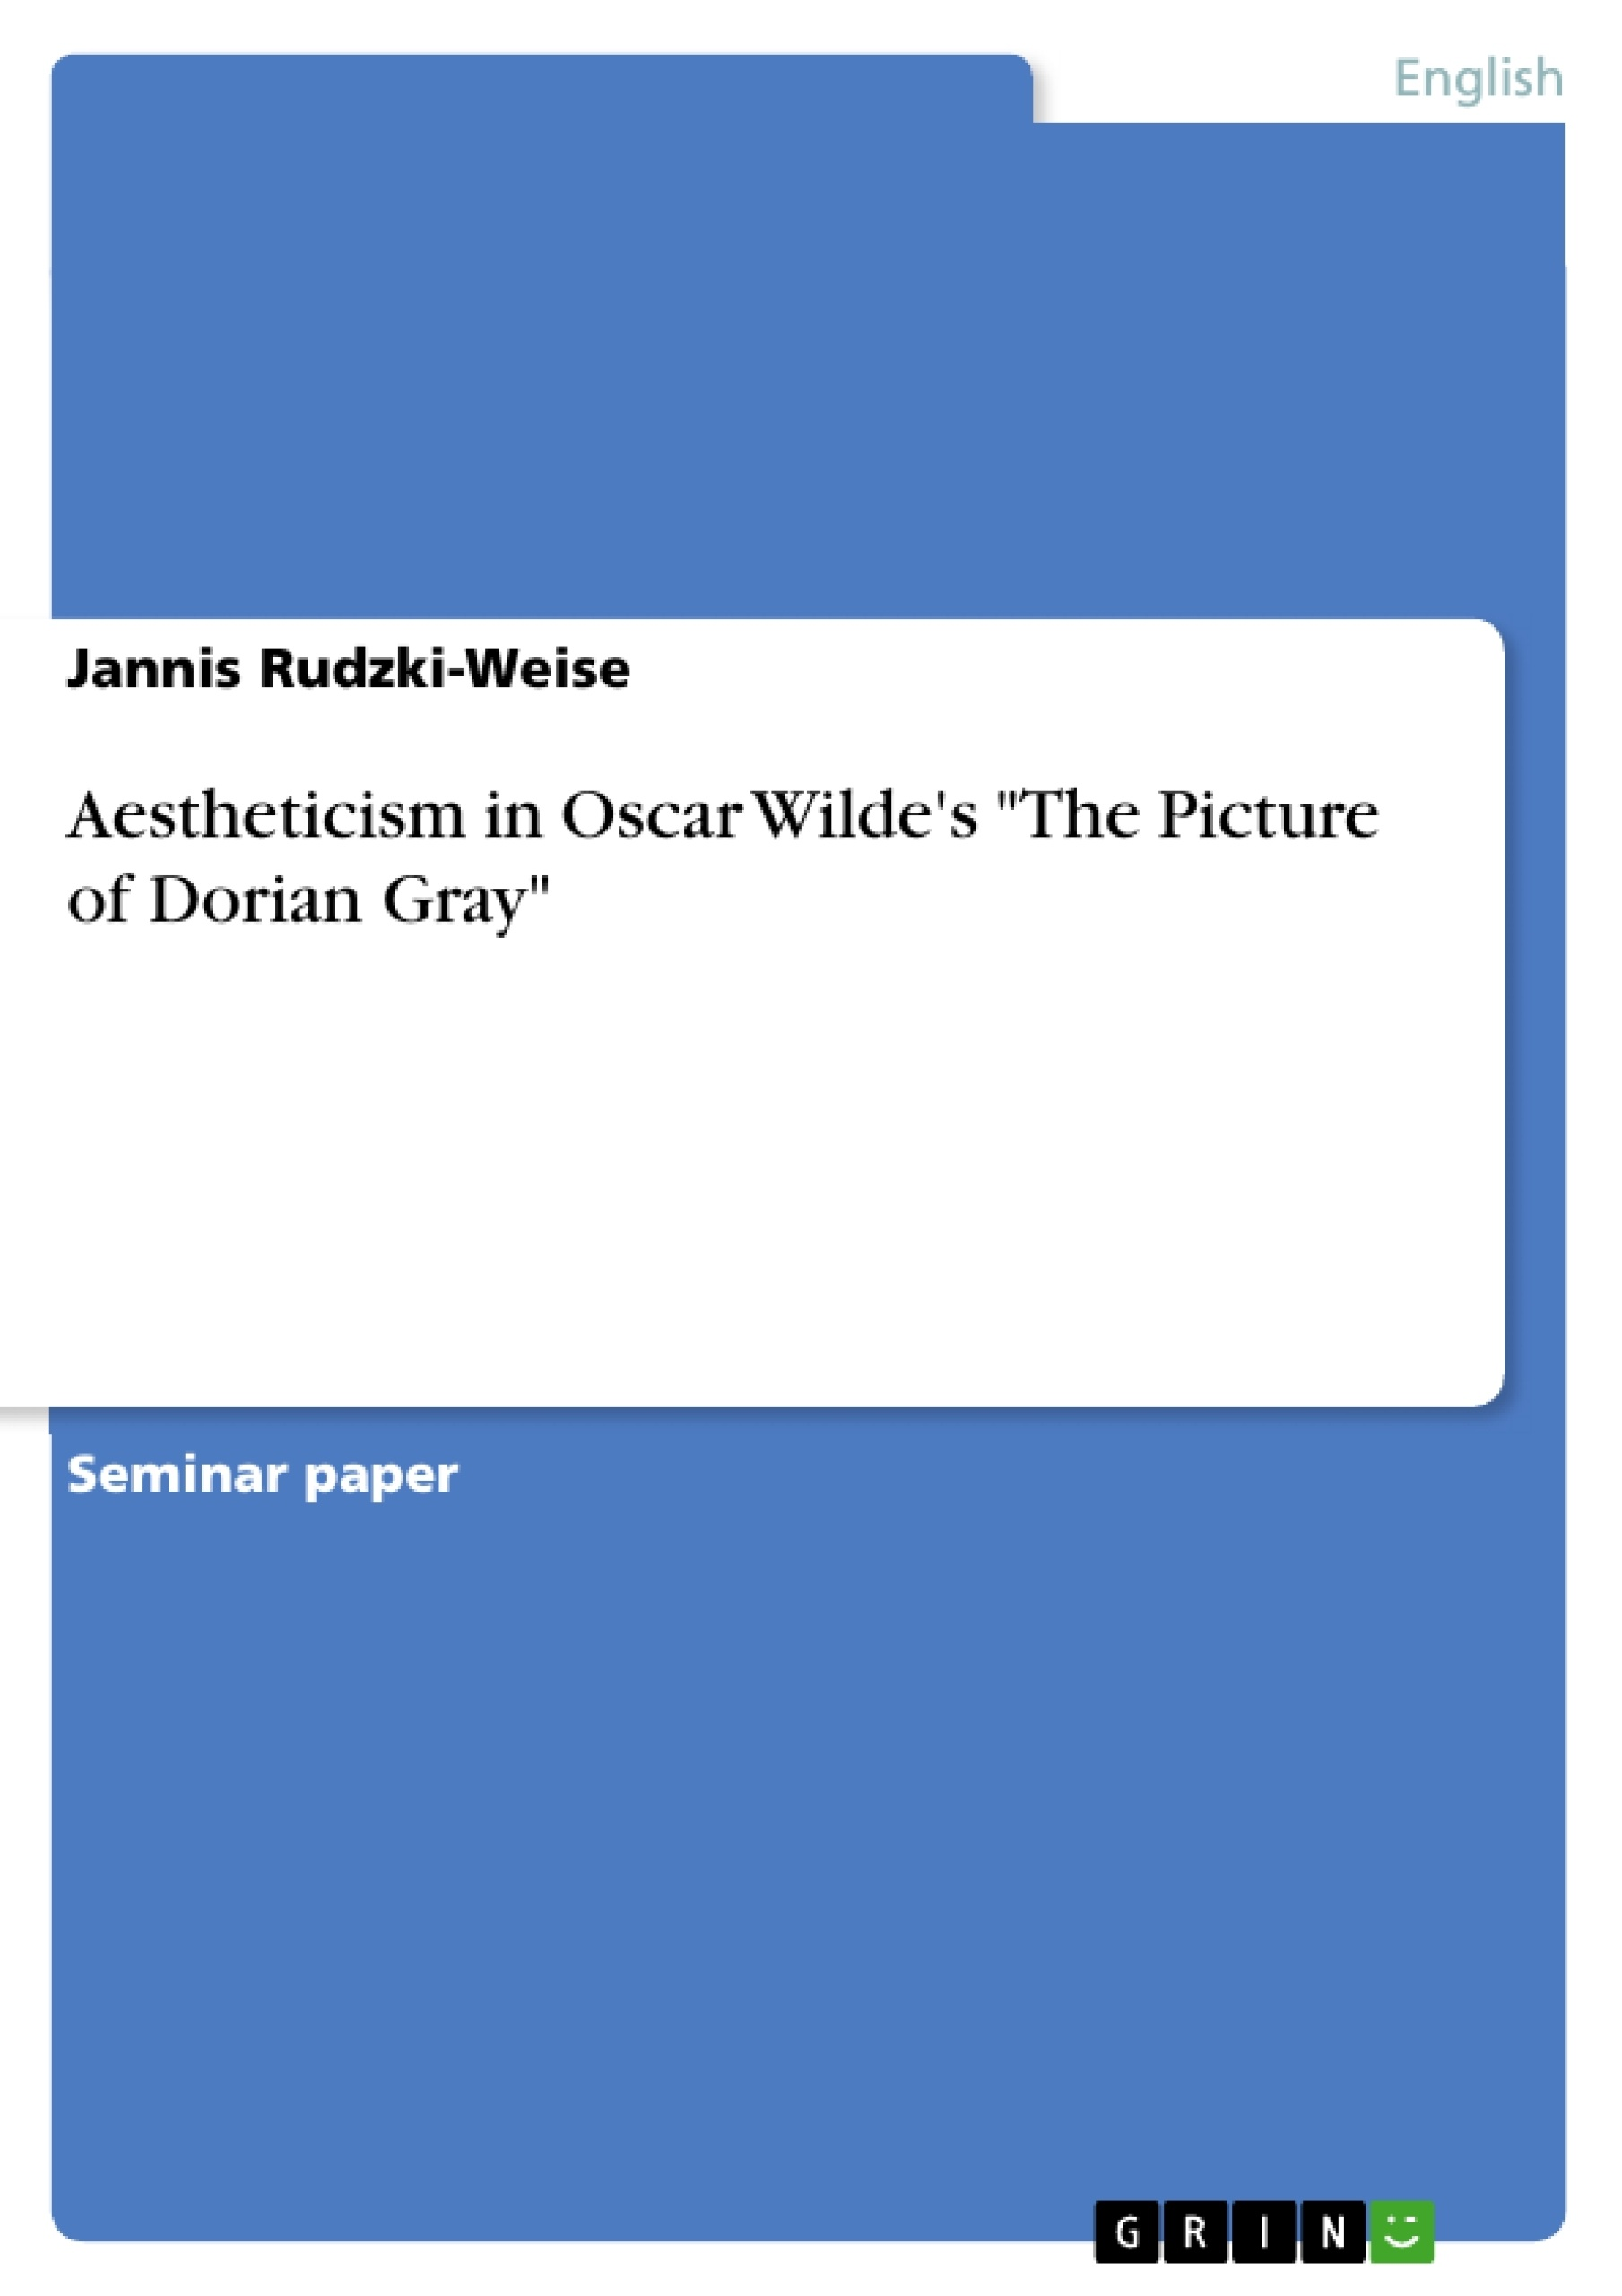 oscar wildes aestheticism essay The conflict between aestheticism and morality in oscar wilde's the picture of dorian gray oscar wilde prefaces his novel, the picture of dorian gray, with a reflection on art, the artist, and the utility of both.